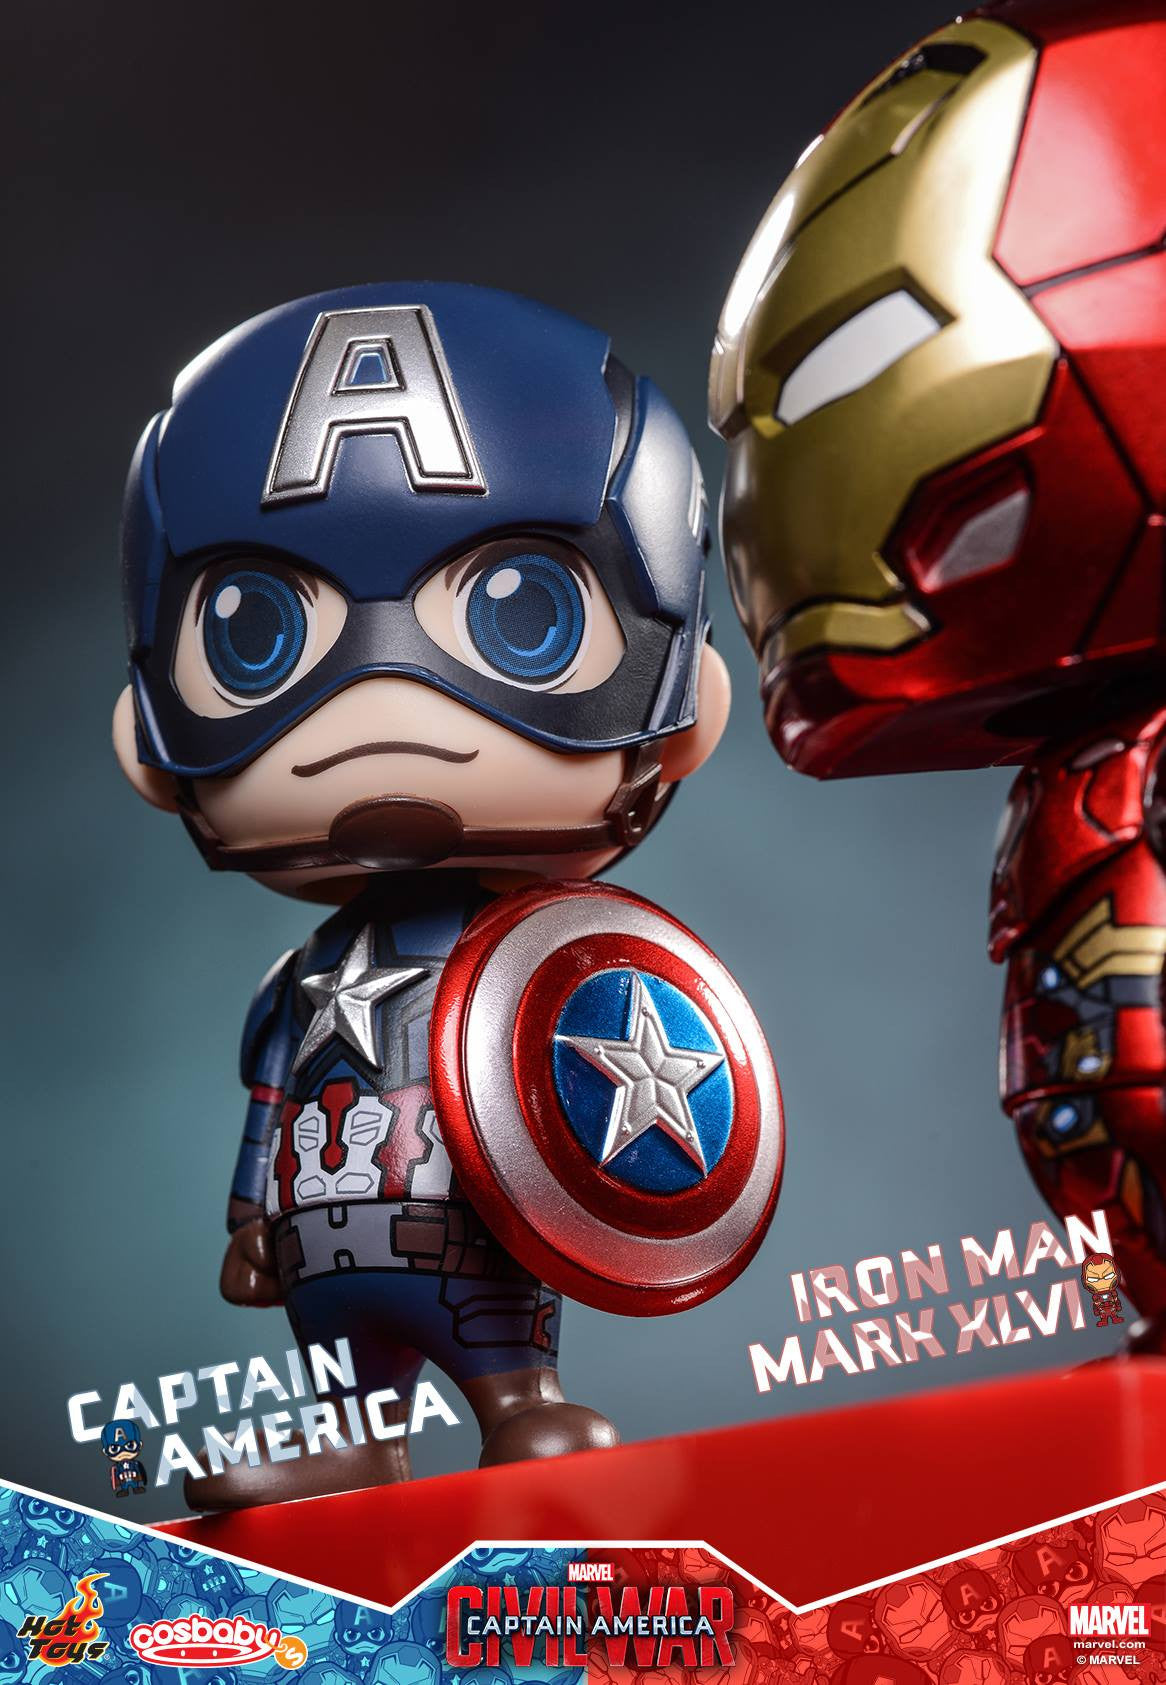 Hot Toys - COSB199-200 - Captain America: Civil War - Captain America & Iron Man Mark XLVI Cosbaby Bobble-Head Set - Marvelous Toys - 4